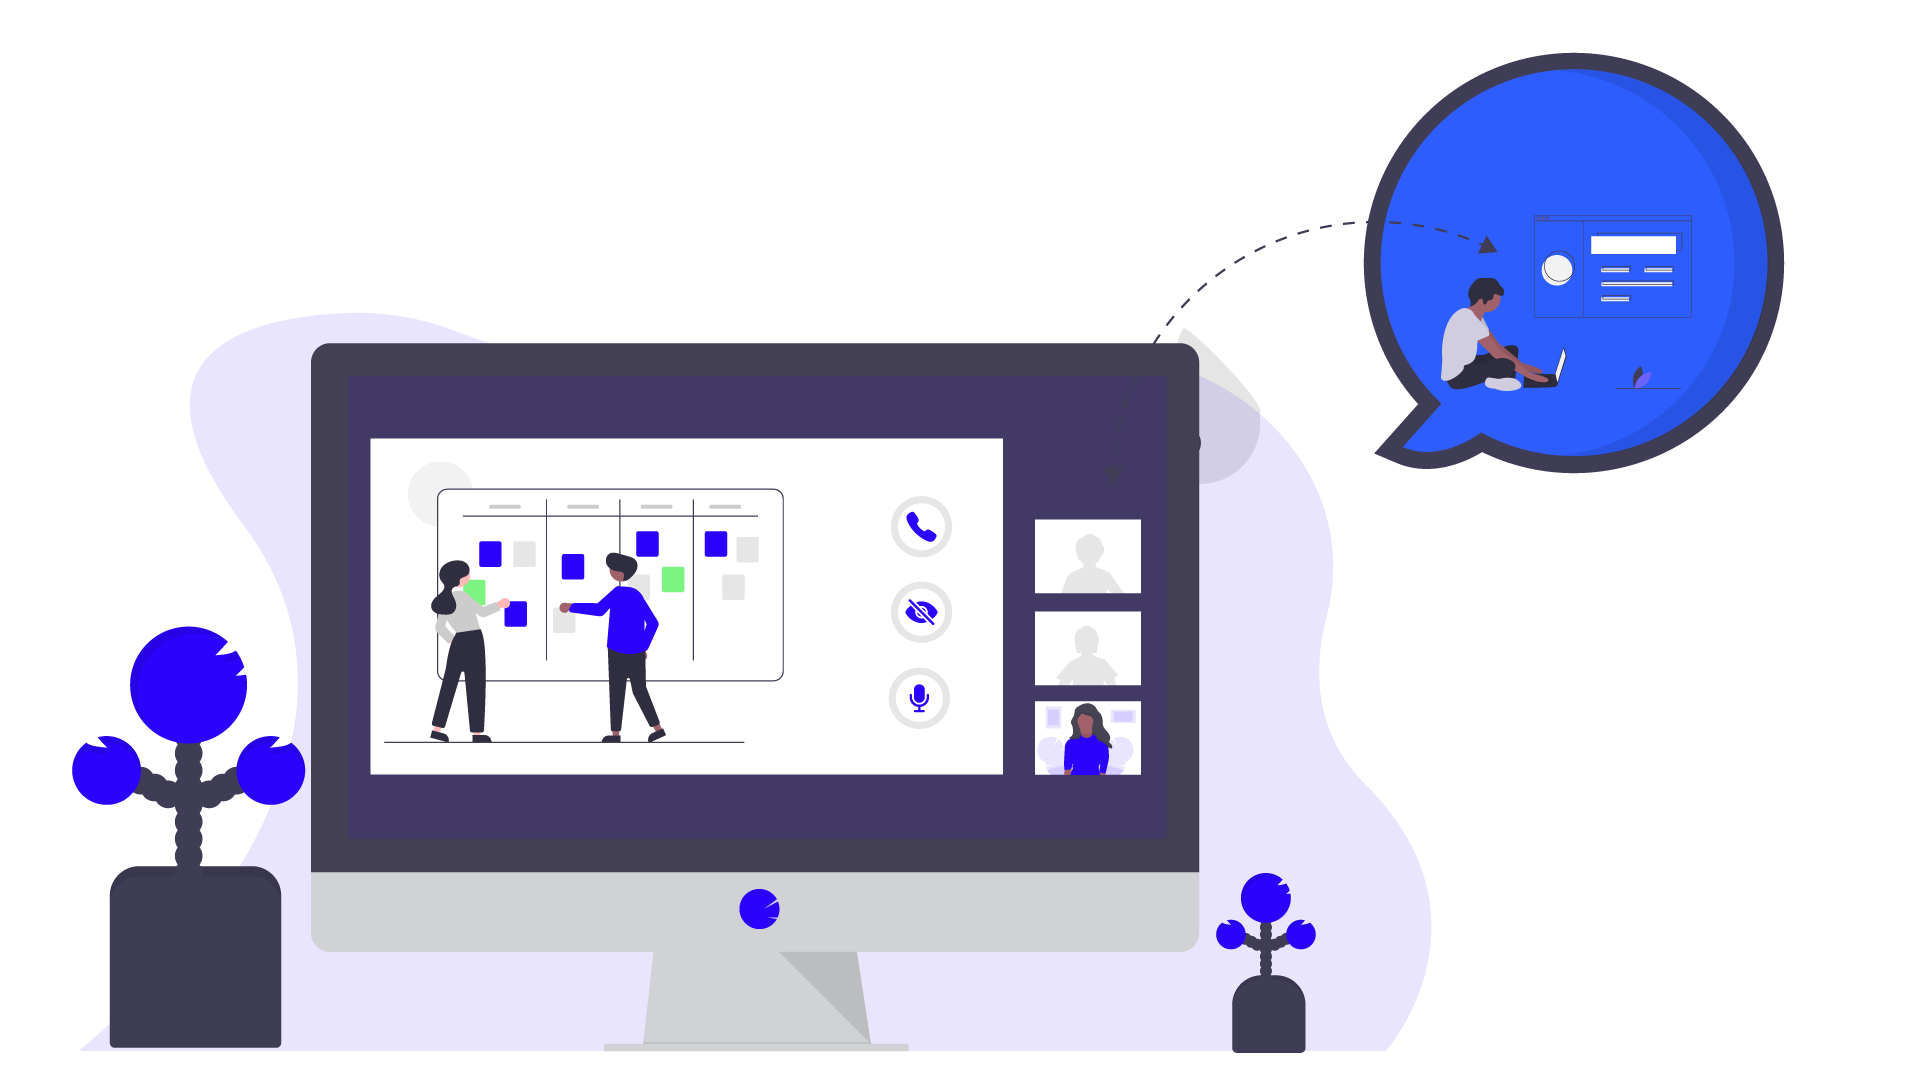 A remote project kick-off in a video call